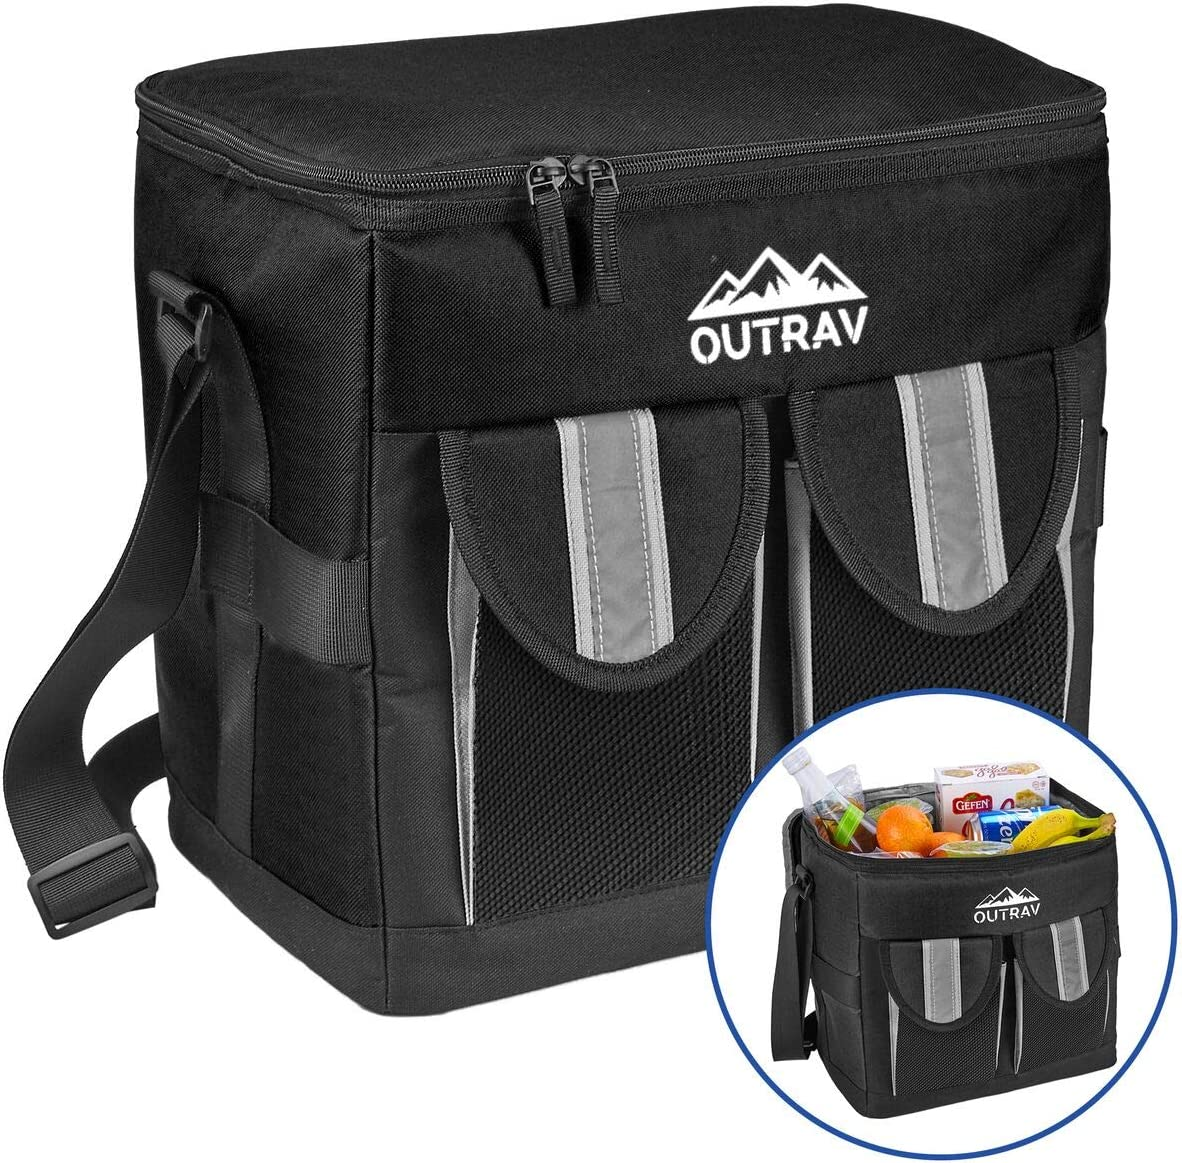 Outrav Black Padded Insulated Cooler 30 Can Capacity – Soft Collapsible Leak Proof Tote for Camping, Picnics and Travel Large Main Compartment, 2 Front Pouches, Handle and Shoulder Strap